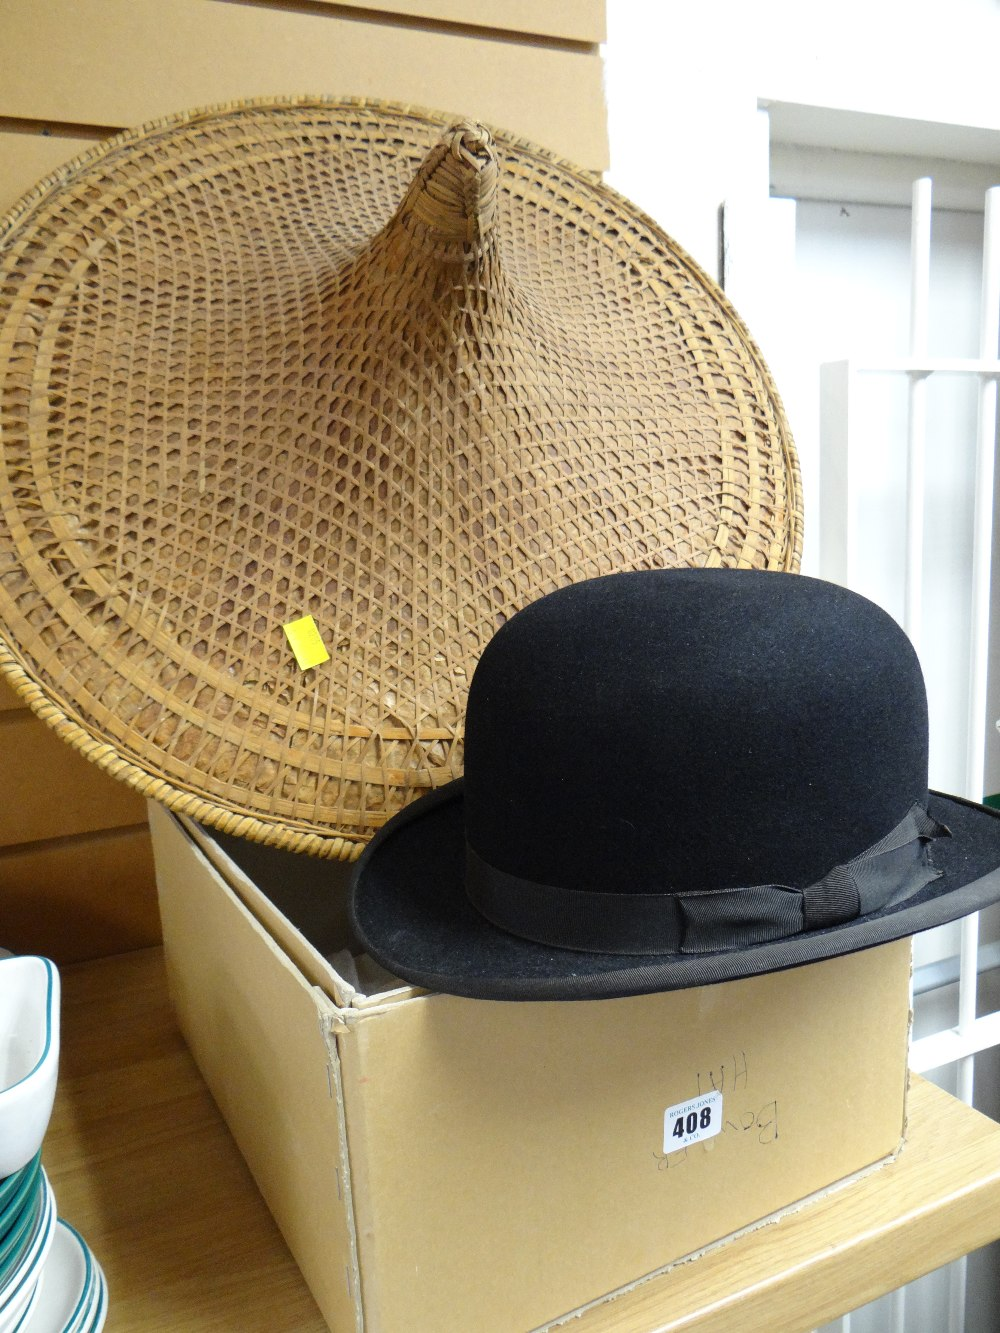 A Vintage Austin Reed Bowler Hat Two Chinese Wicker Field Workers Hatscondition Report The Hats